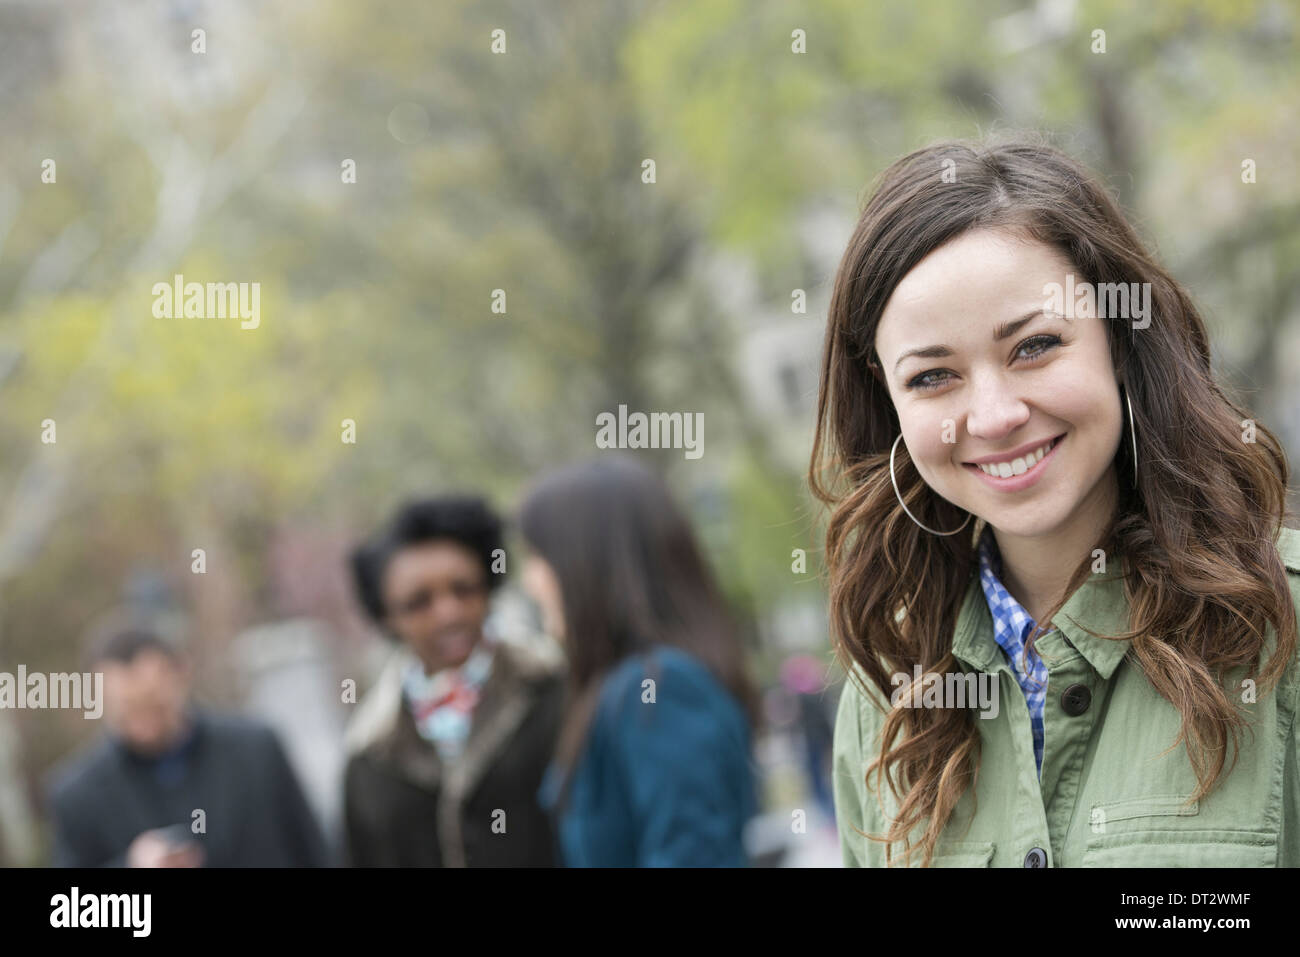 A group of people in the park A young woman in an open necked shirt smiling and looking at the camera - Stock Image